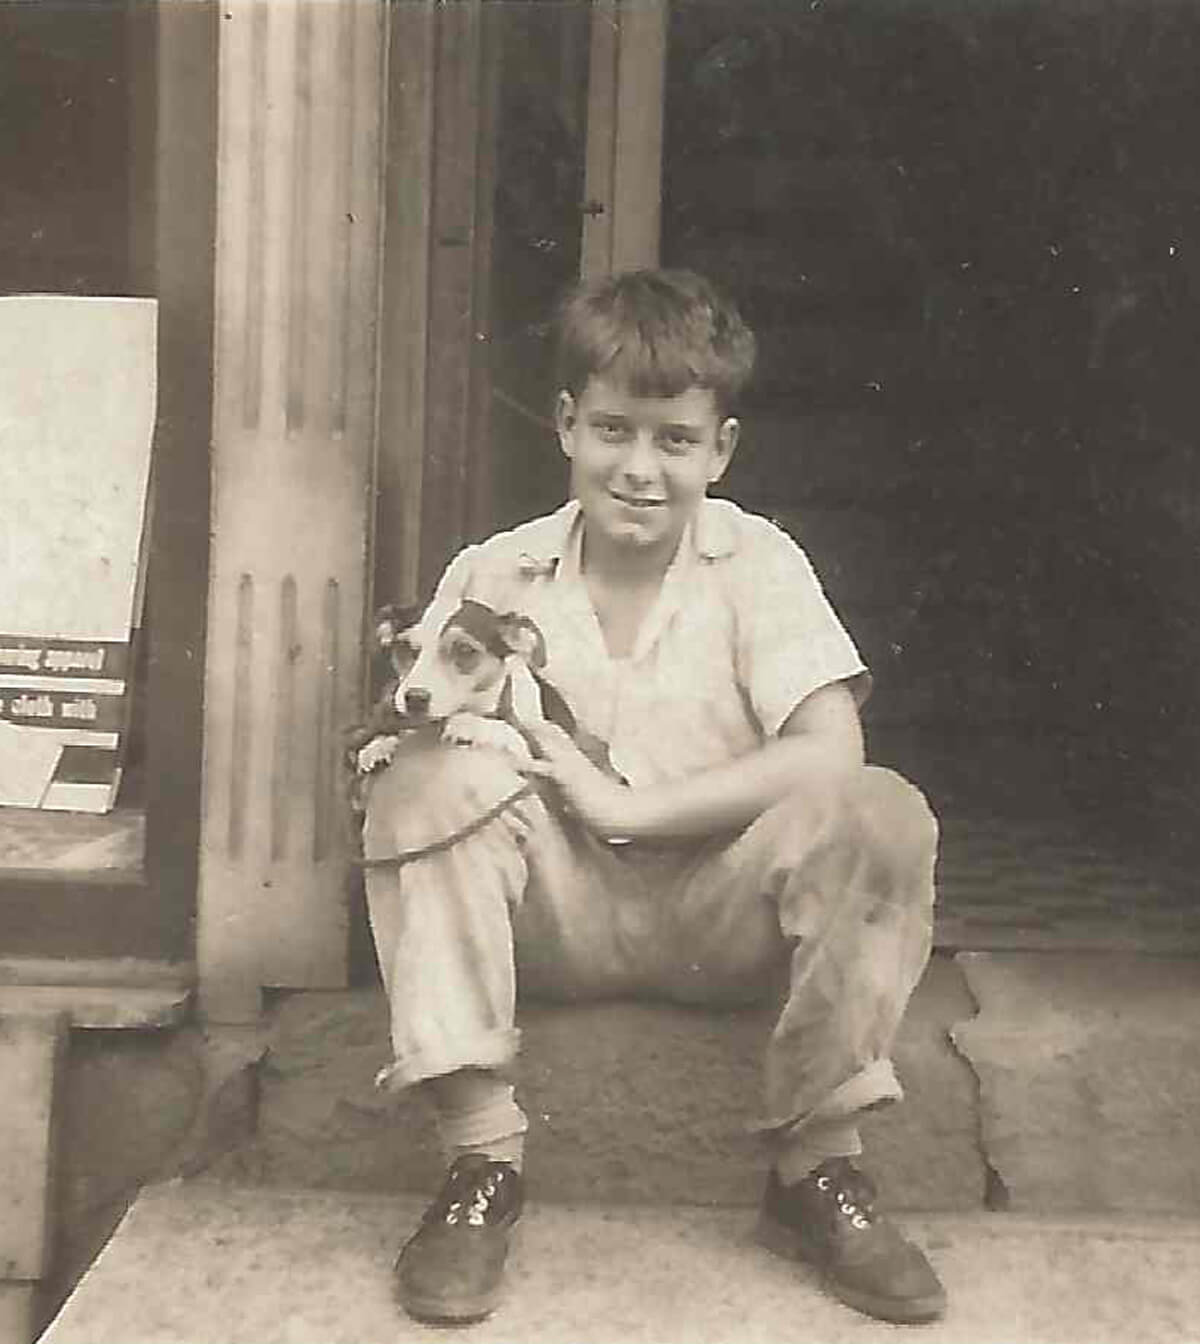 Young Al with dog